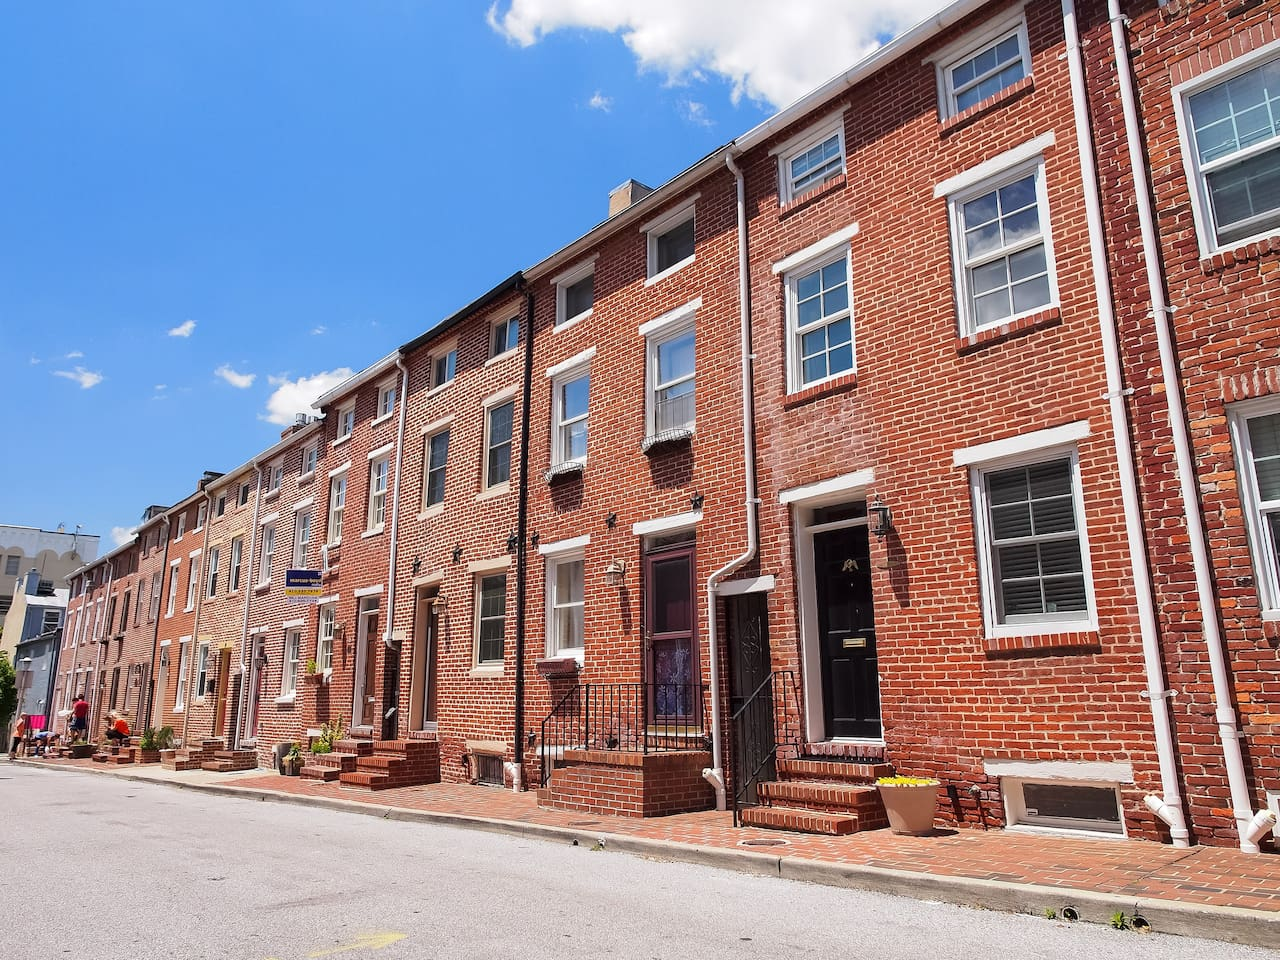 Historic rowhouse of Baltimore.  Enjoy stoop sitting with the rest of Baltimore.